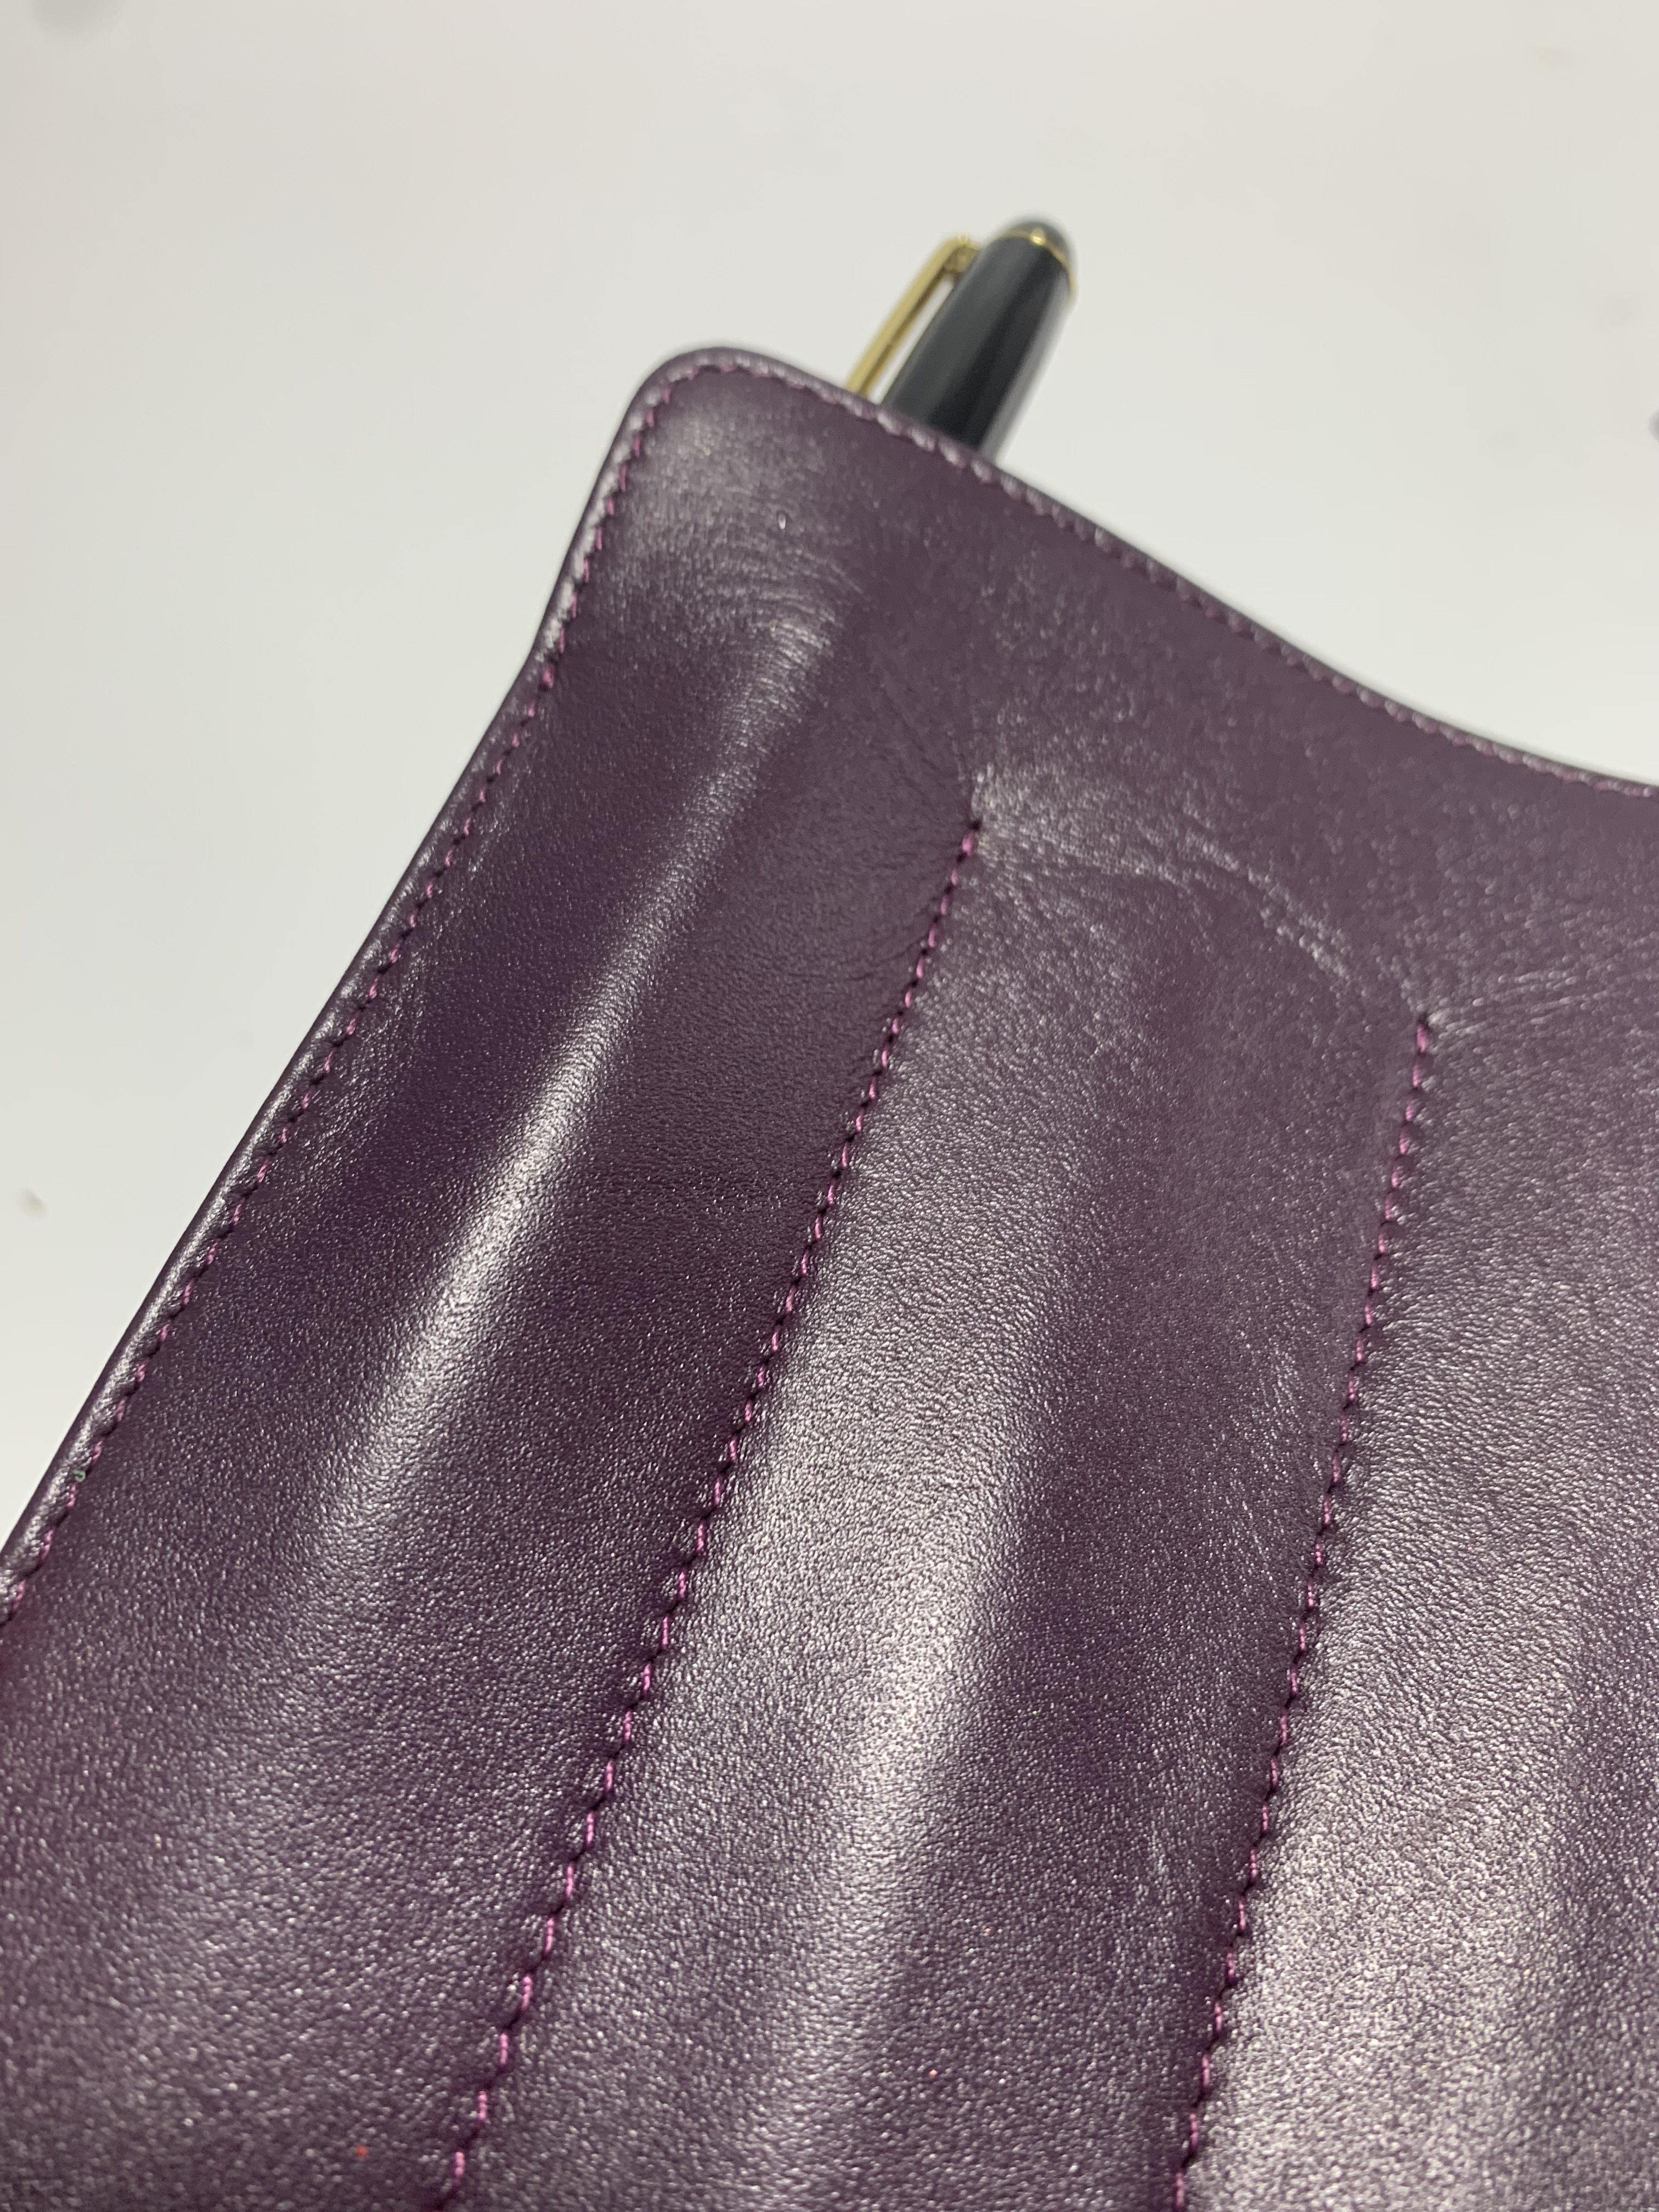 custom 3 slot purple leather pen pouch/holder